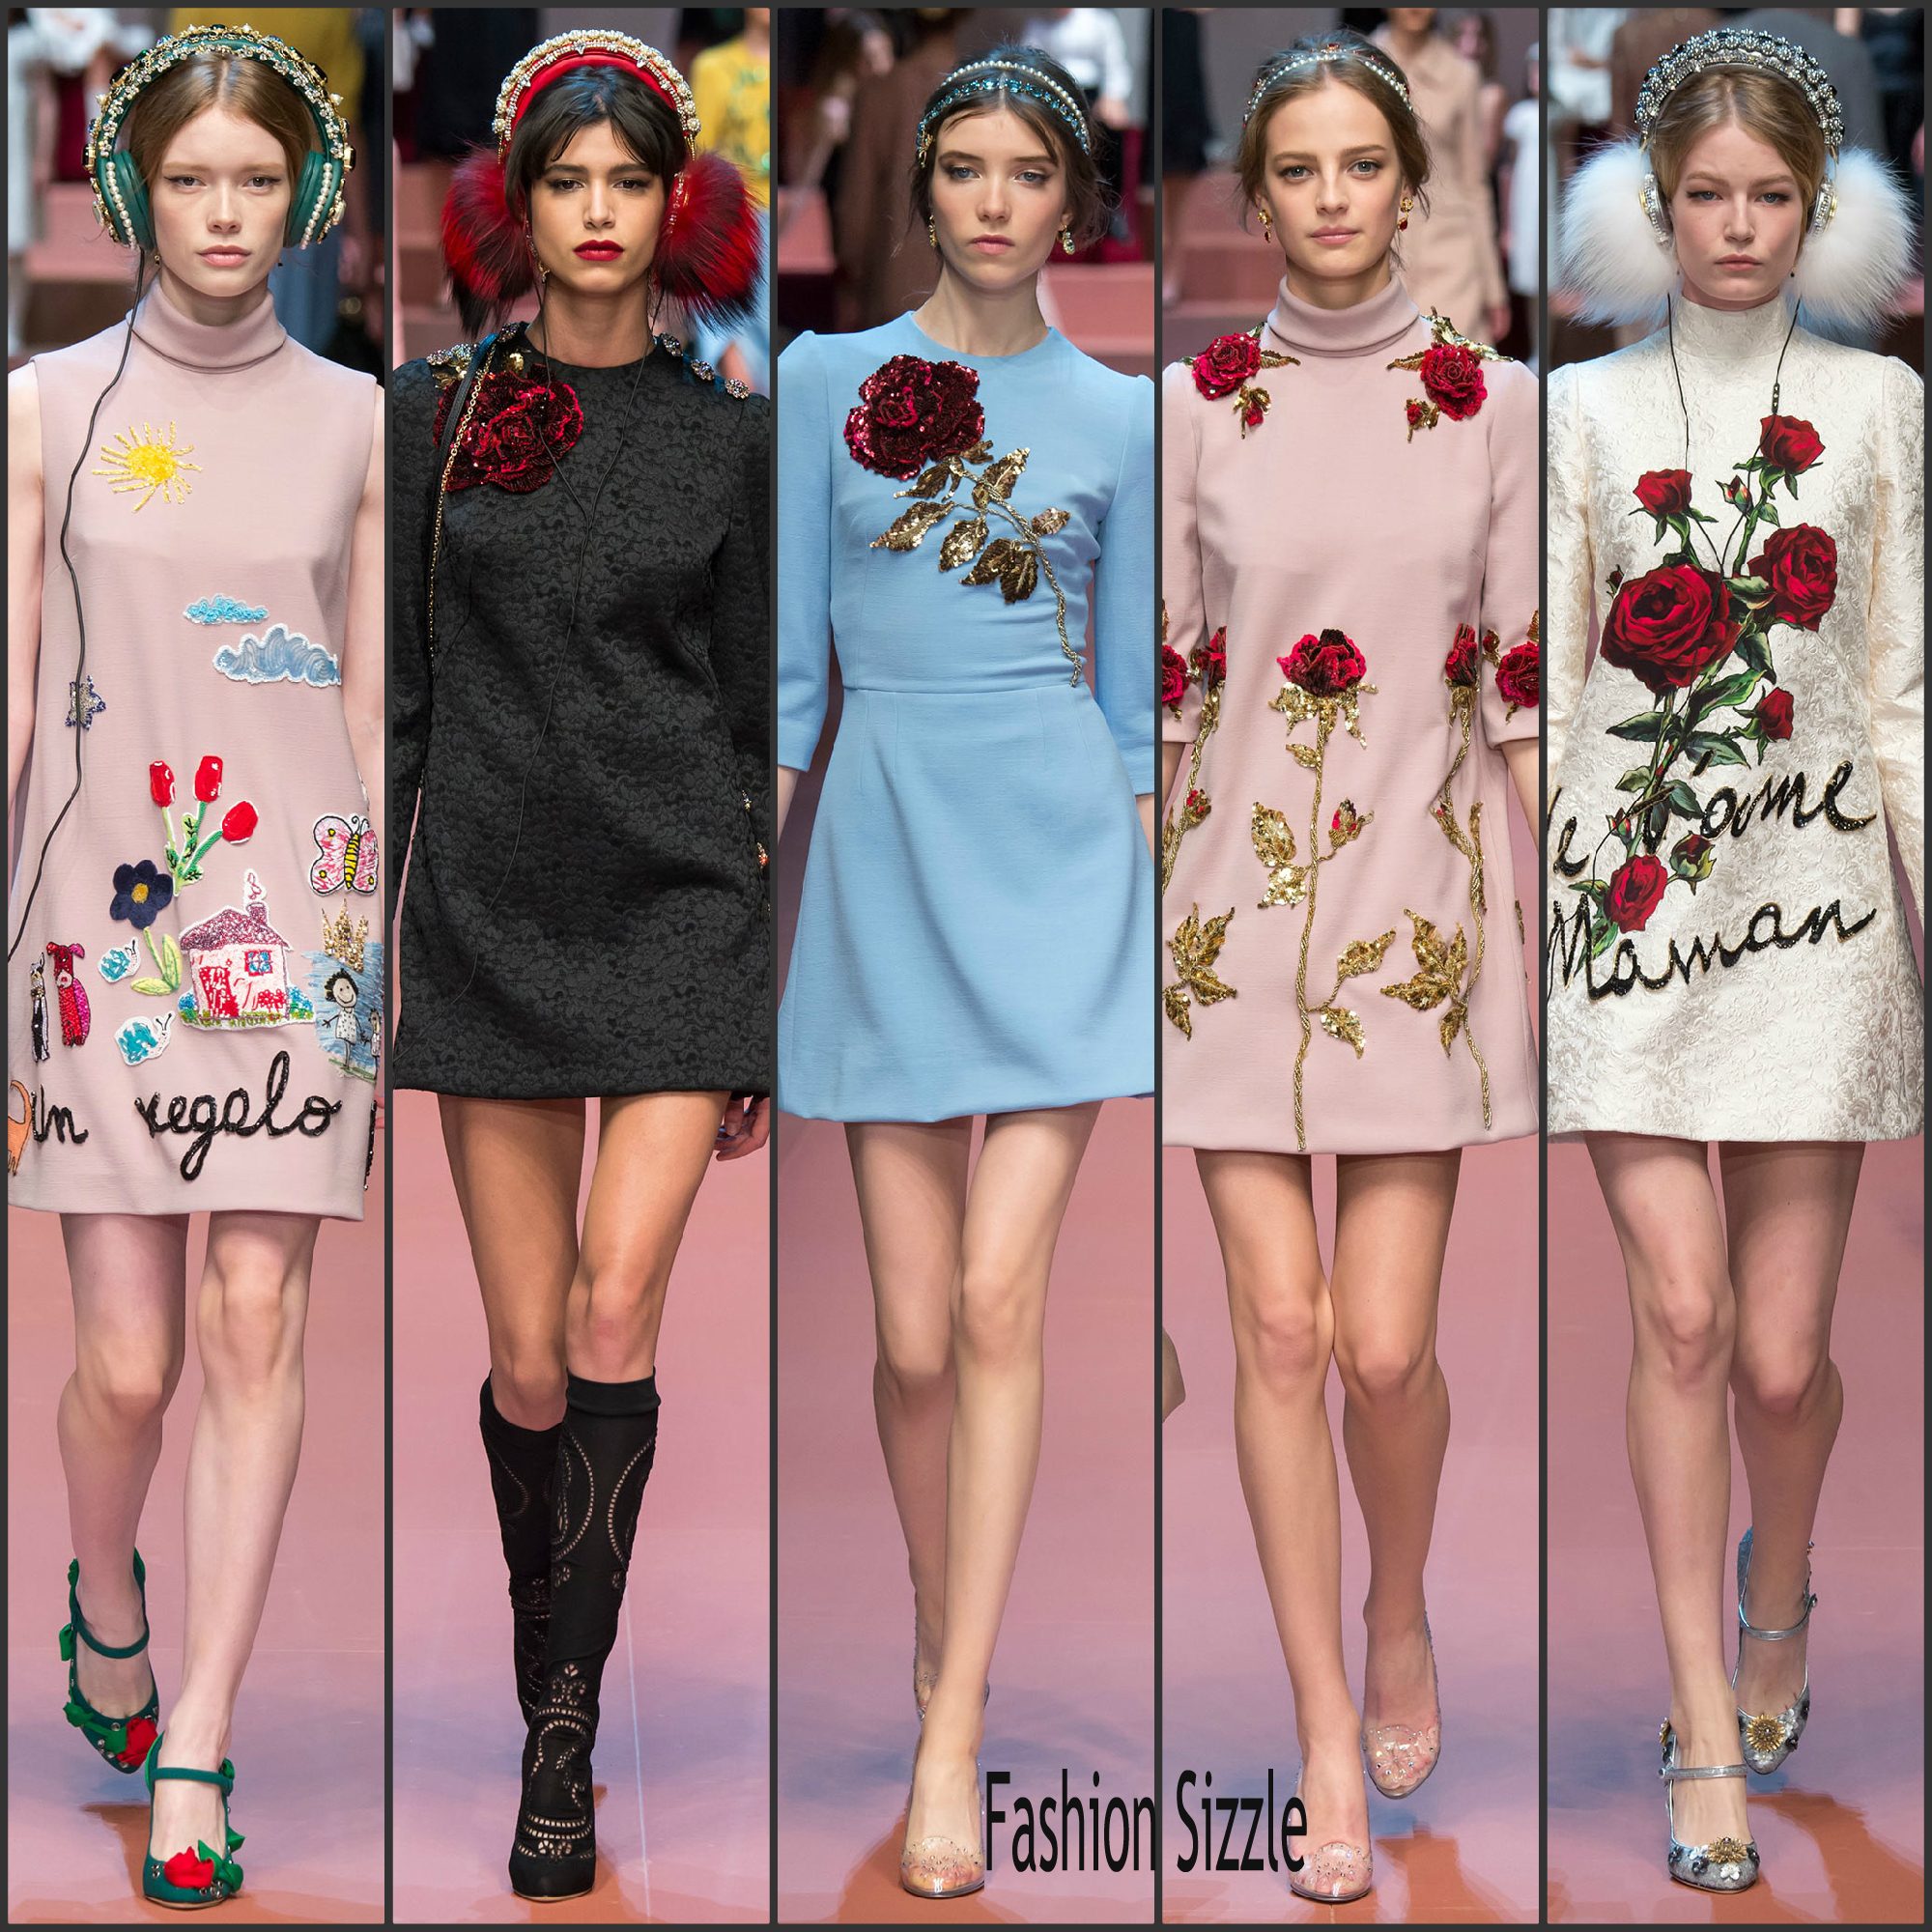 Fall Trends 2015 60s Hippie And Mod Fashion Fashion Sizzle